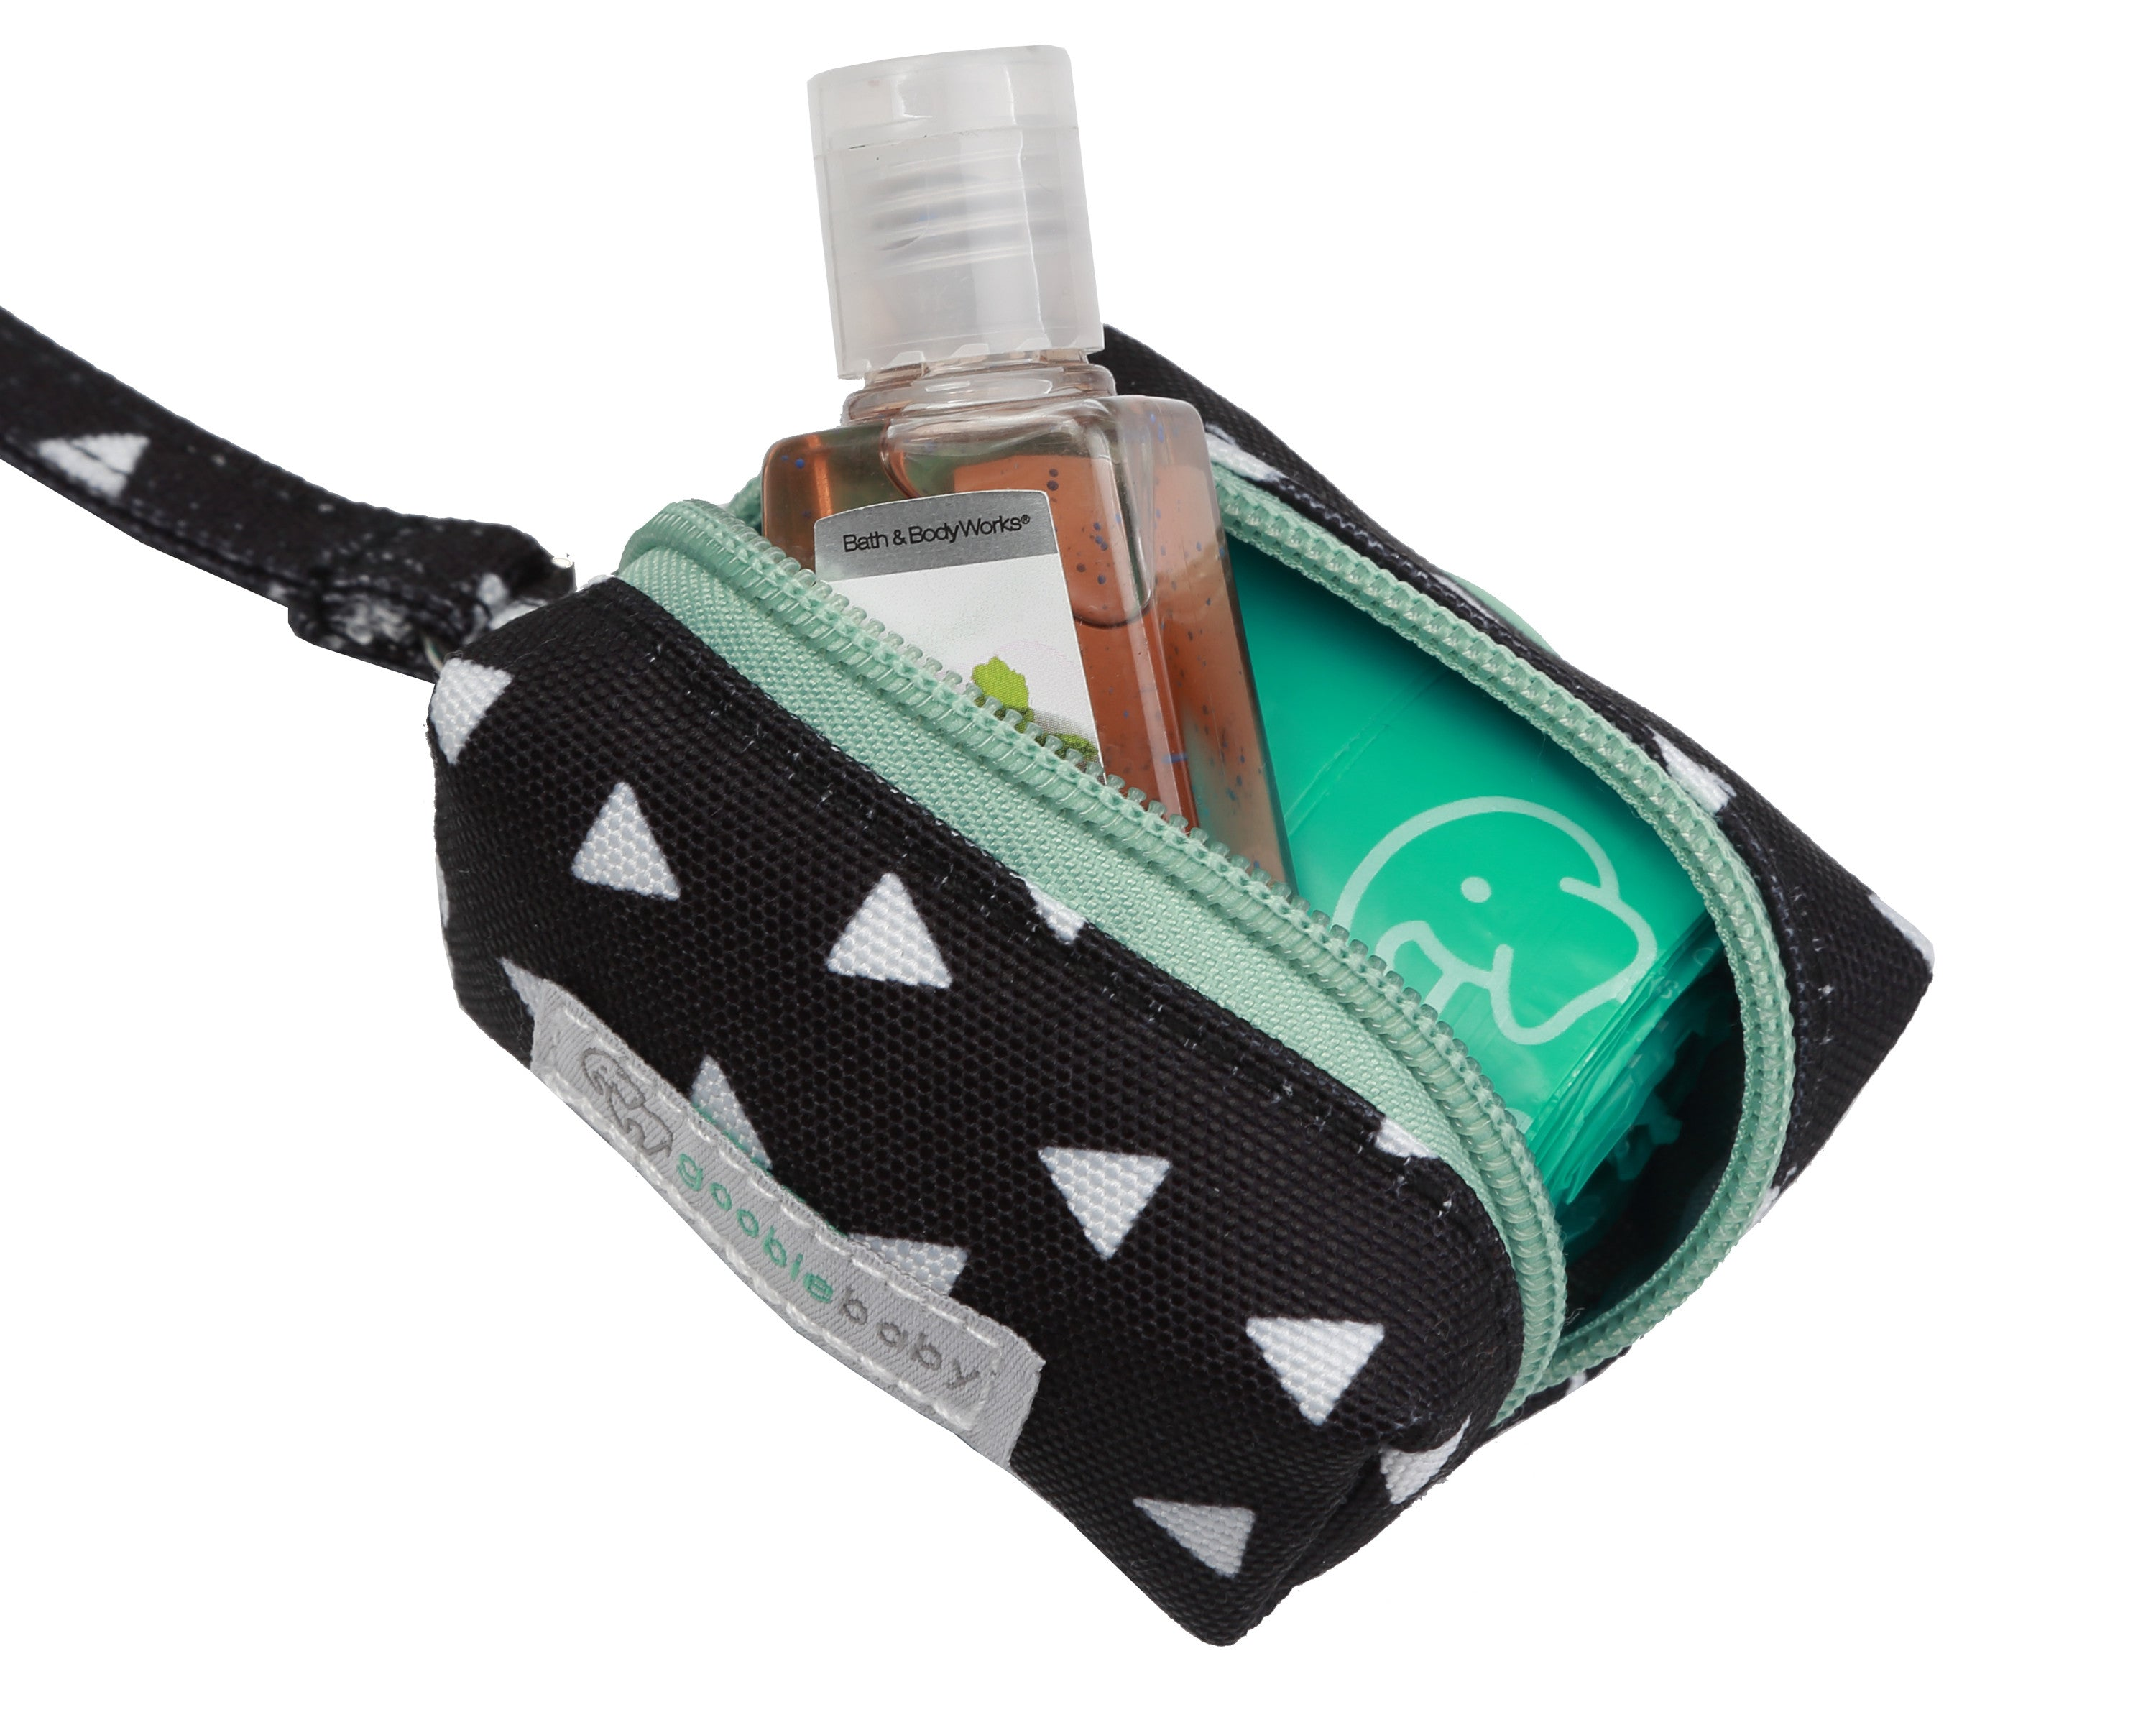 Diaper Waste Bag Dispenser - Black Triangles